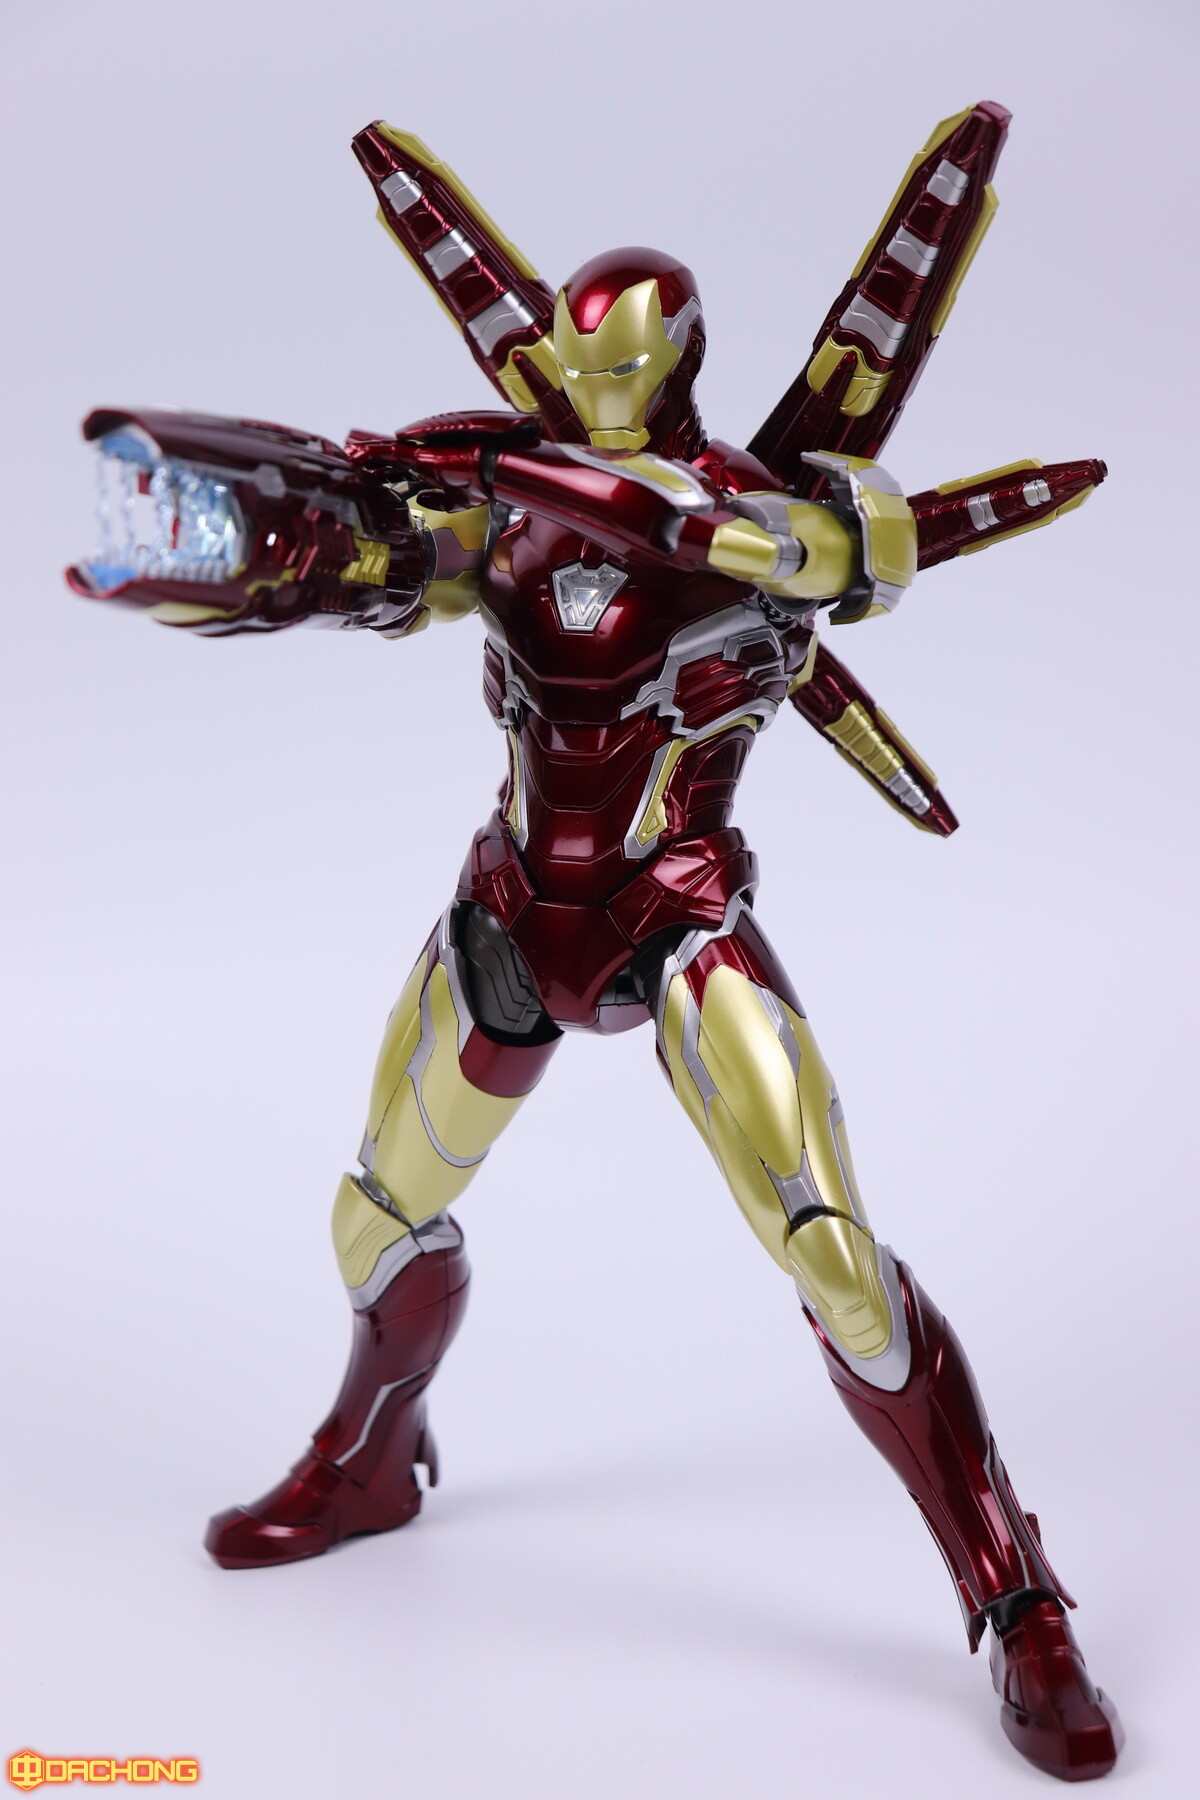 S498_2_e_model_ironman_mk85_dx_110.jpg